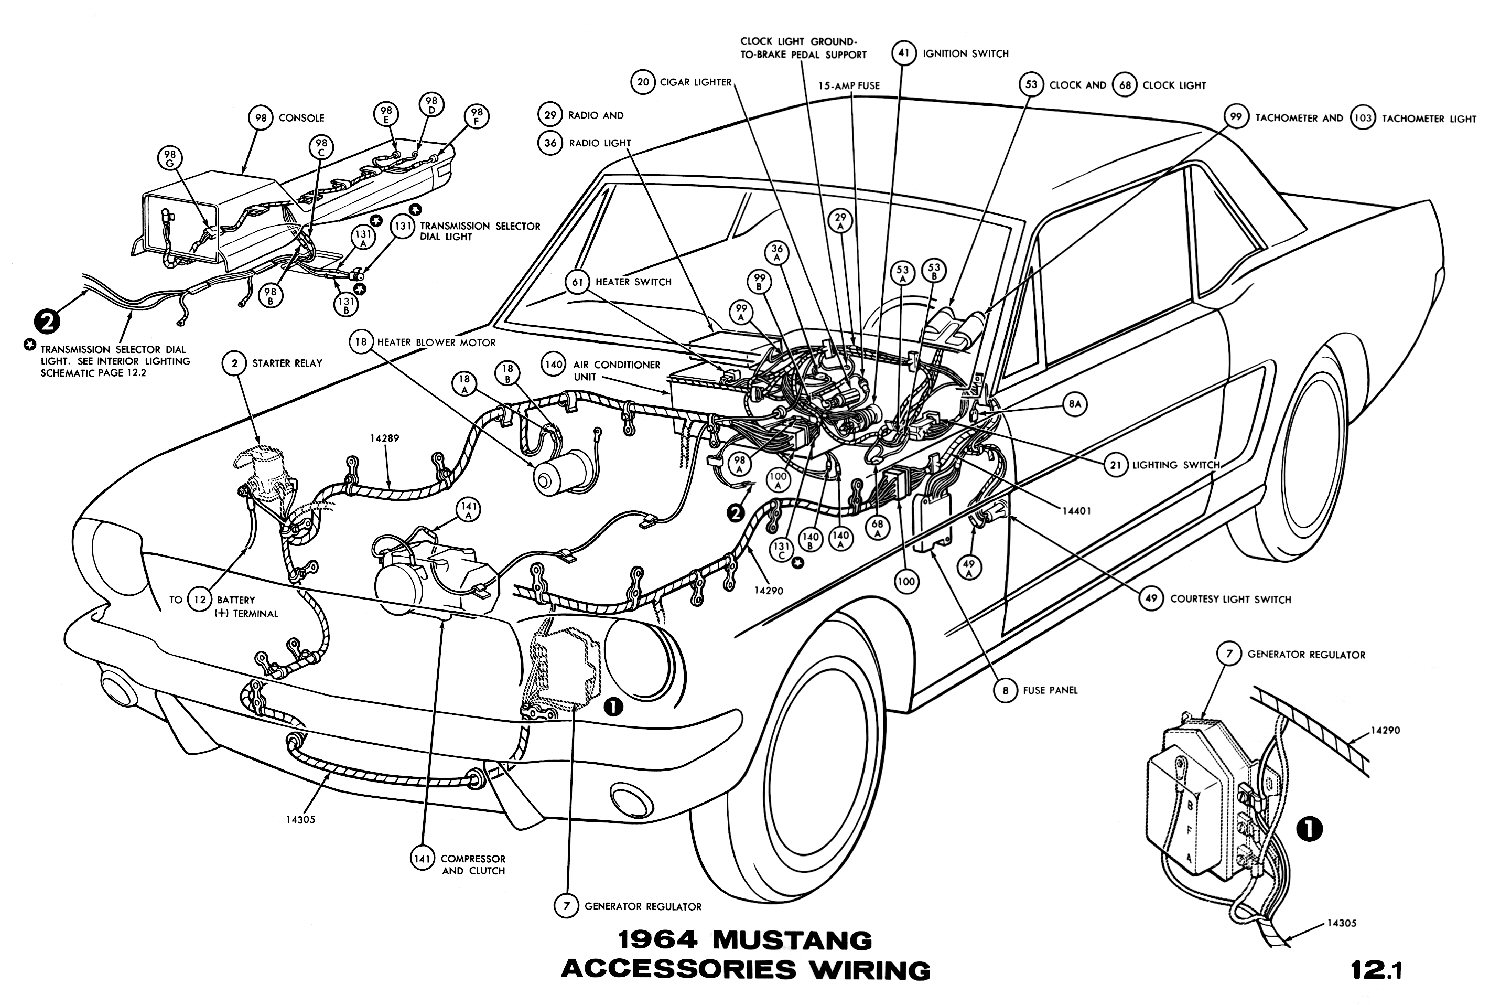 hight resolution of 1964 mustang wiring diagrams average joe restoration 1967 mustang wiring diagram 1964 mustang wiring diagram